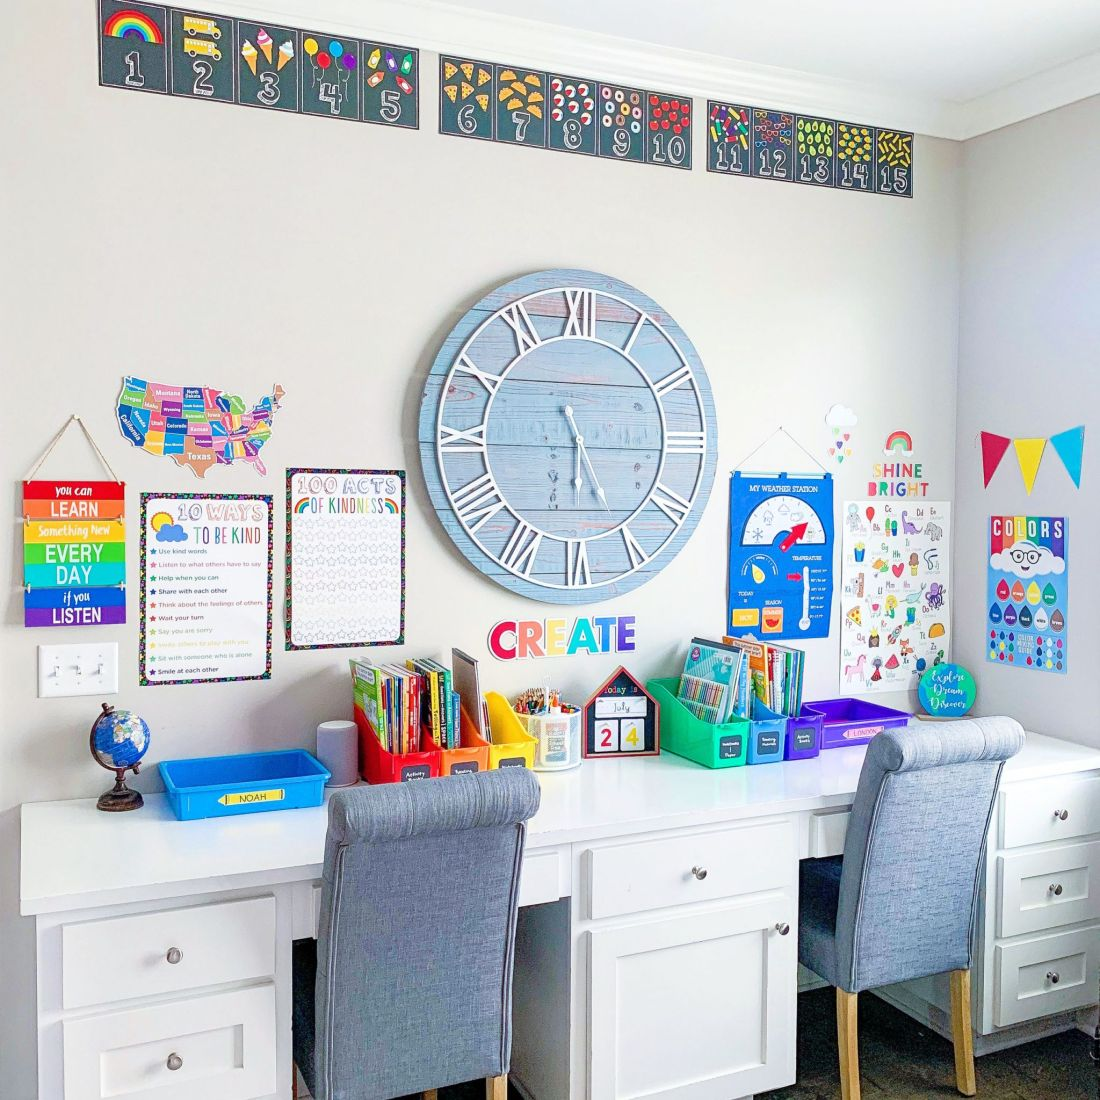 Homeshcool Room by popular Nashville life and style blog, Modern Day Moguls: image of a homeschool room with tuft chairs, large wooden wall clock, colorful plastic bins, and wall charts.